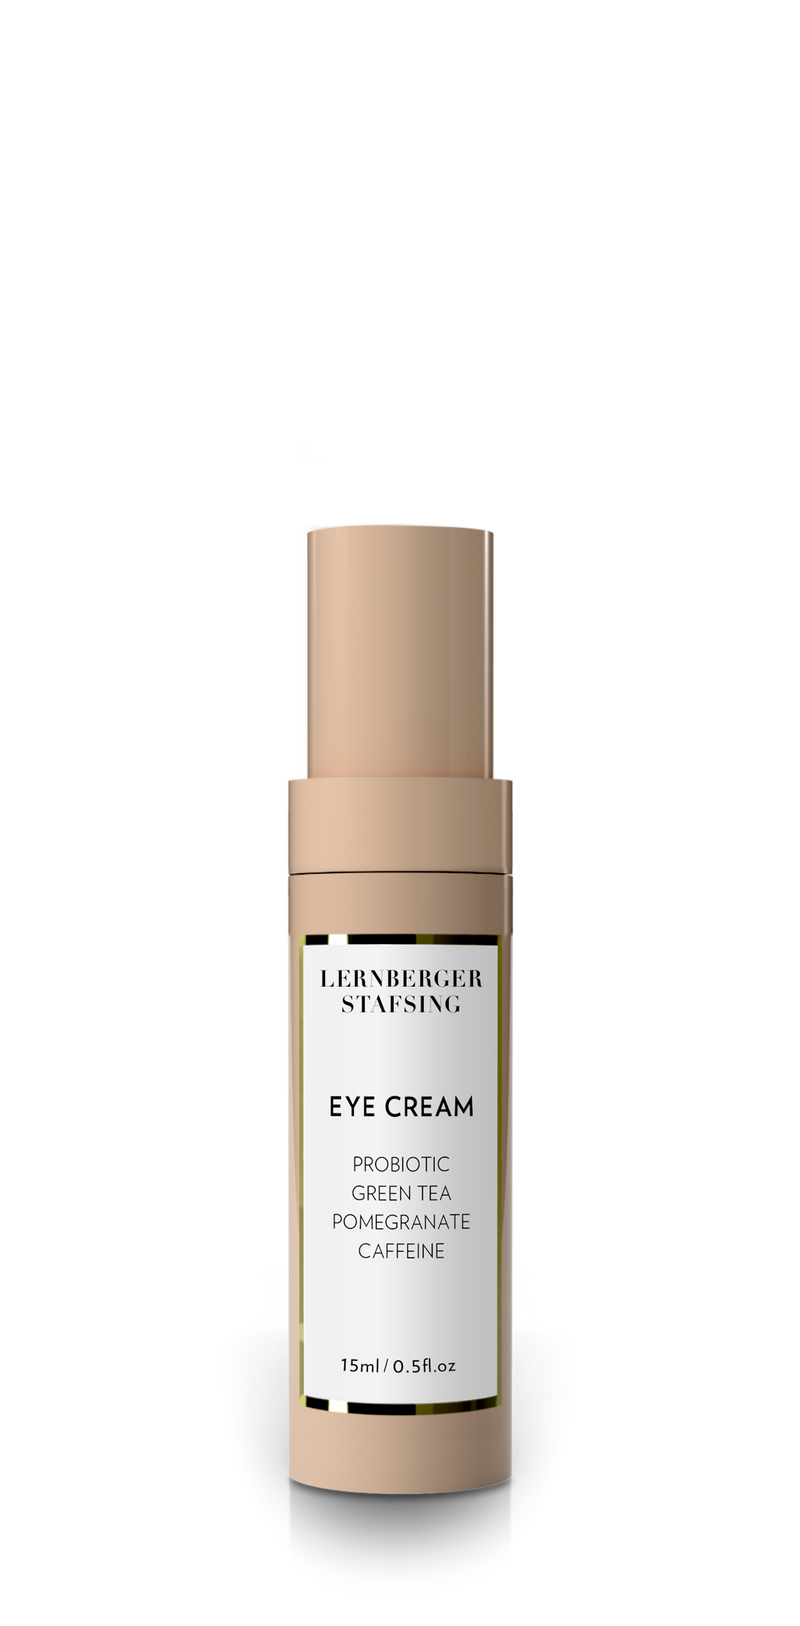 Lernberger Stafsing - Eye Cream